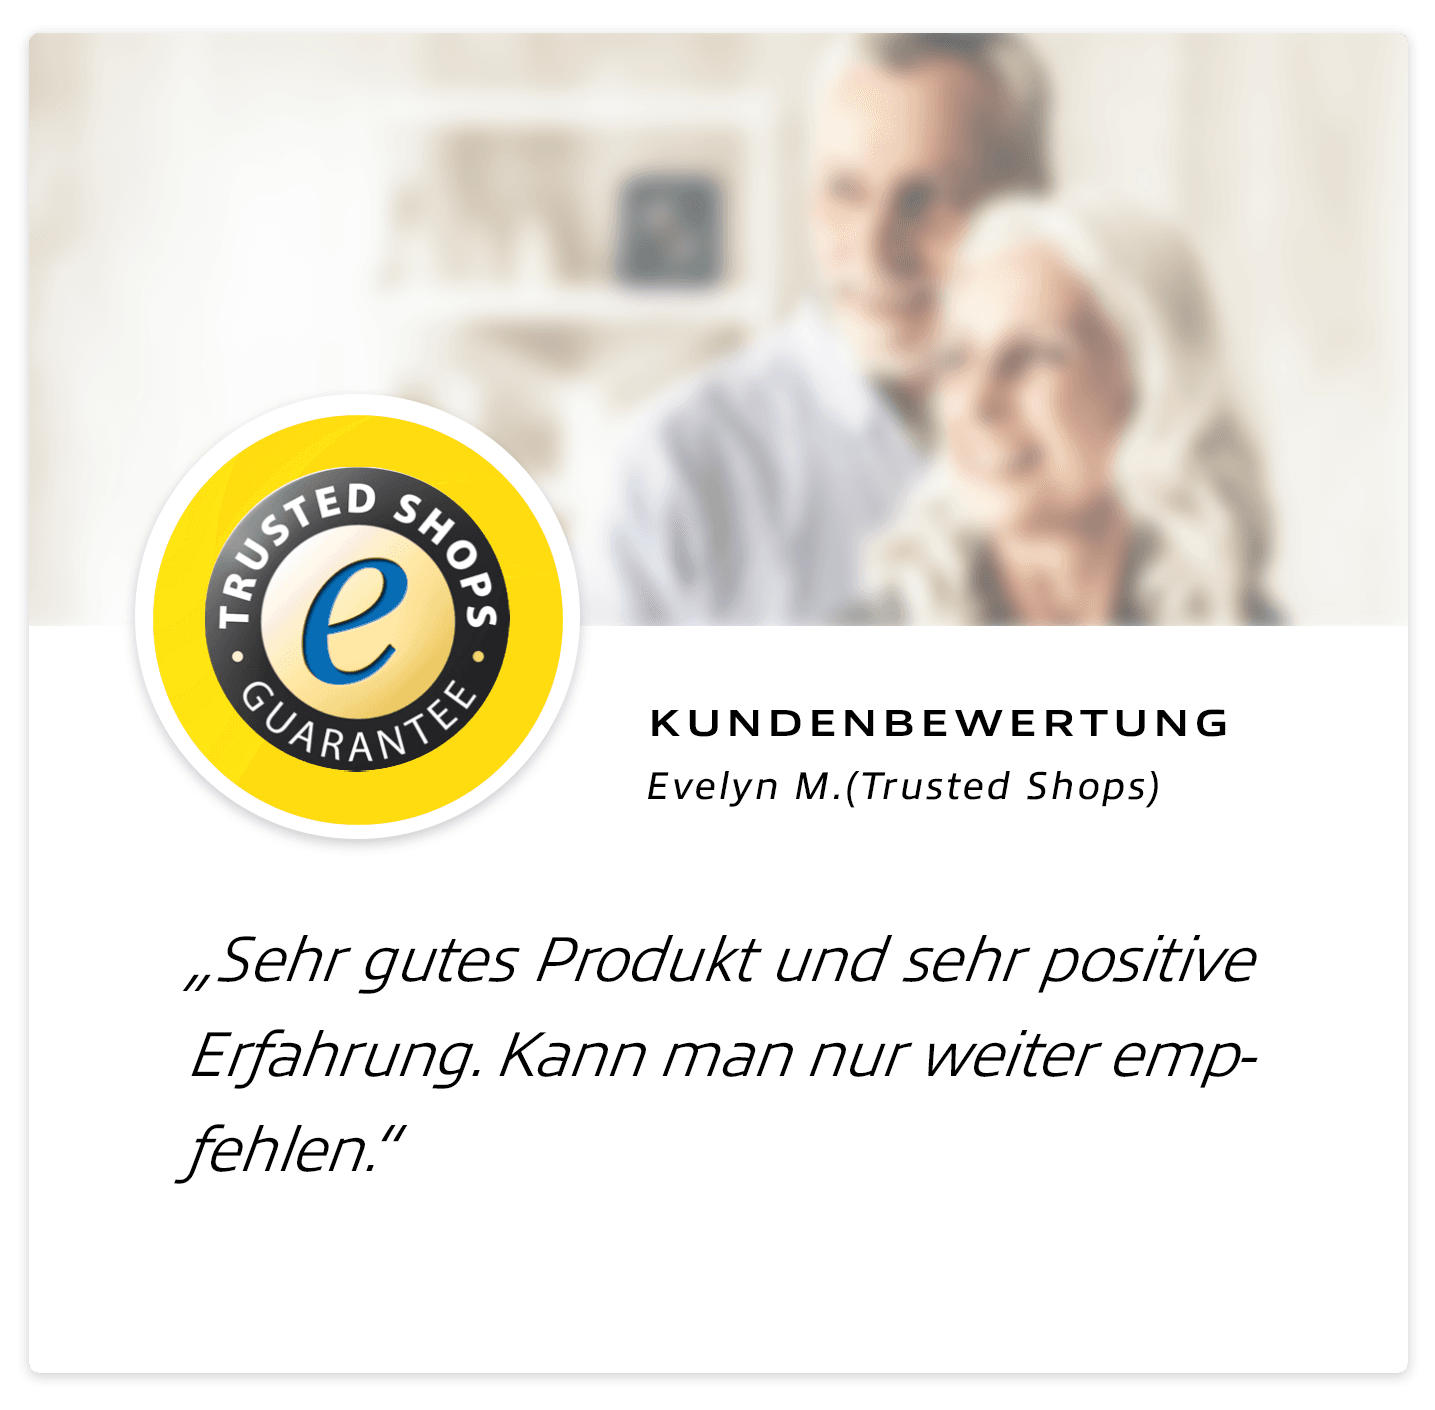 CBD-DEAL24 Erfahrungen: Trusted Shops 03